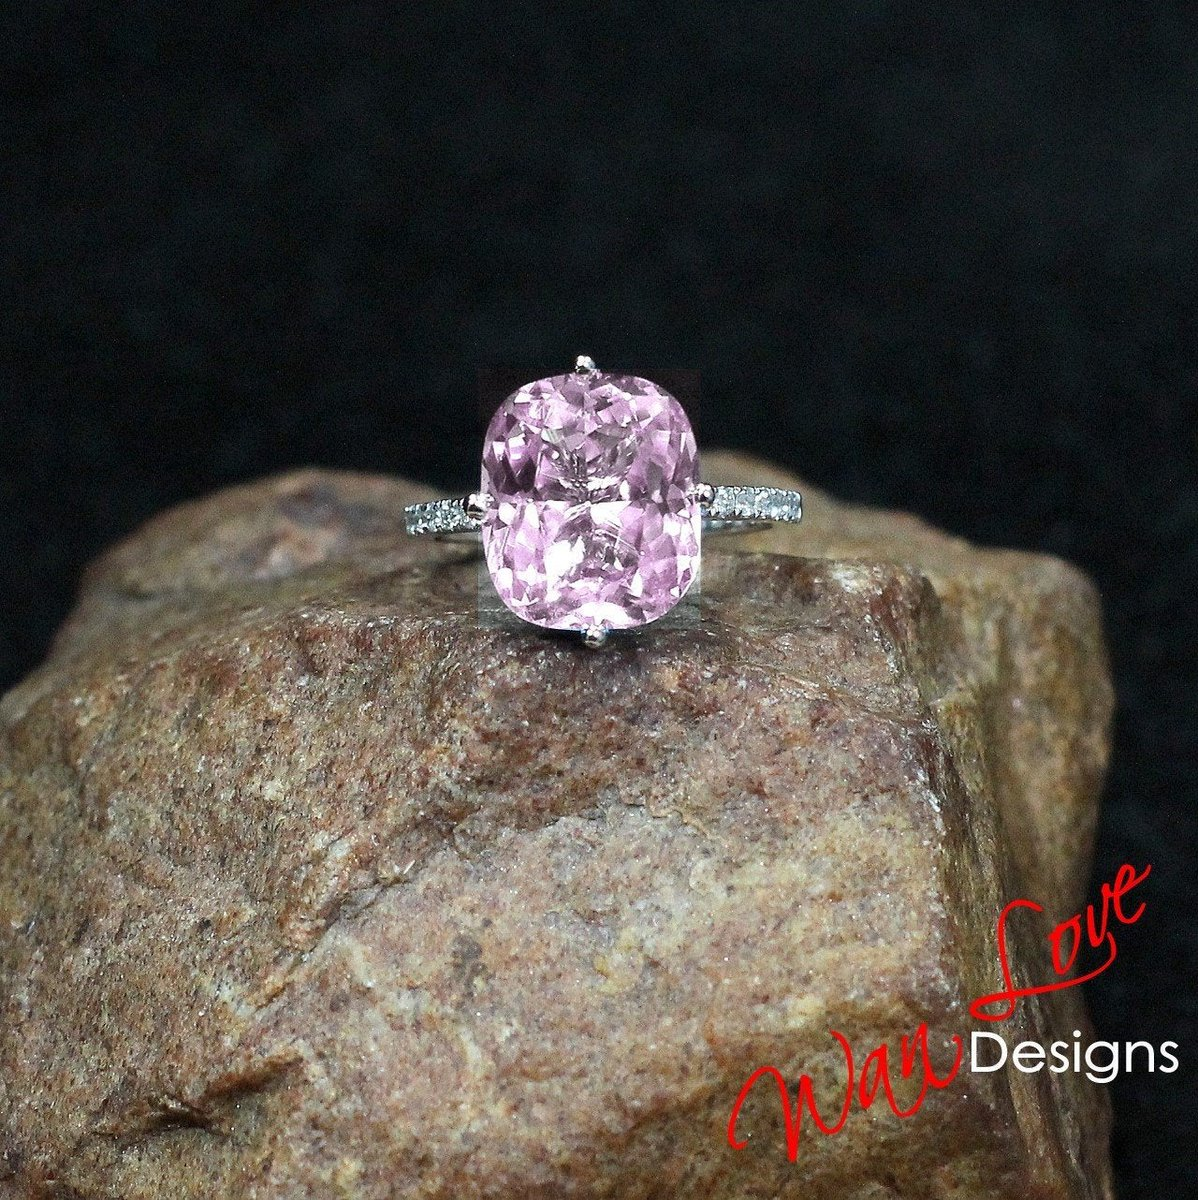 Light Pink Sapphire Diamond Elongated Cushion Engagement Ring,Celebrity,10ct,14x12mm,Custom-14k 18k White Yellow Rose Gold-Platinum-Wedding http://tuppu.net/a1b01b0a  #Etsy #Engagementring #Anniversarygift #Anniversaryring #EngagementRings #WeddingProposalpic.twitter.com/2hno5WcpTs